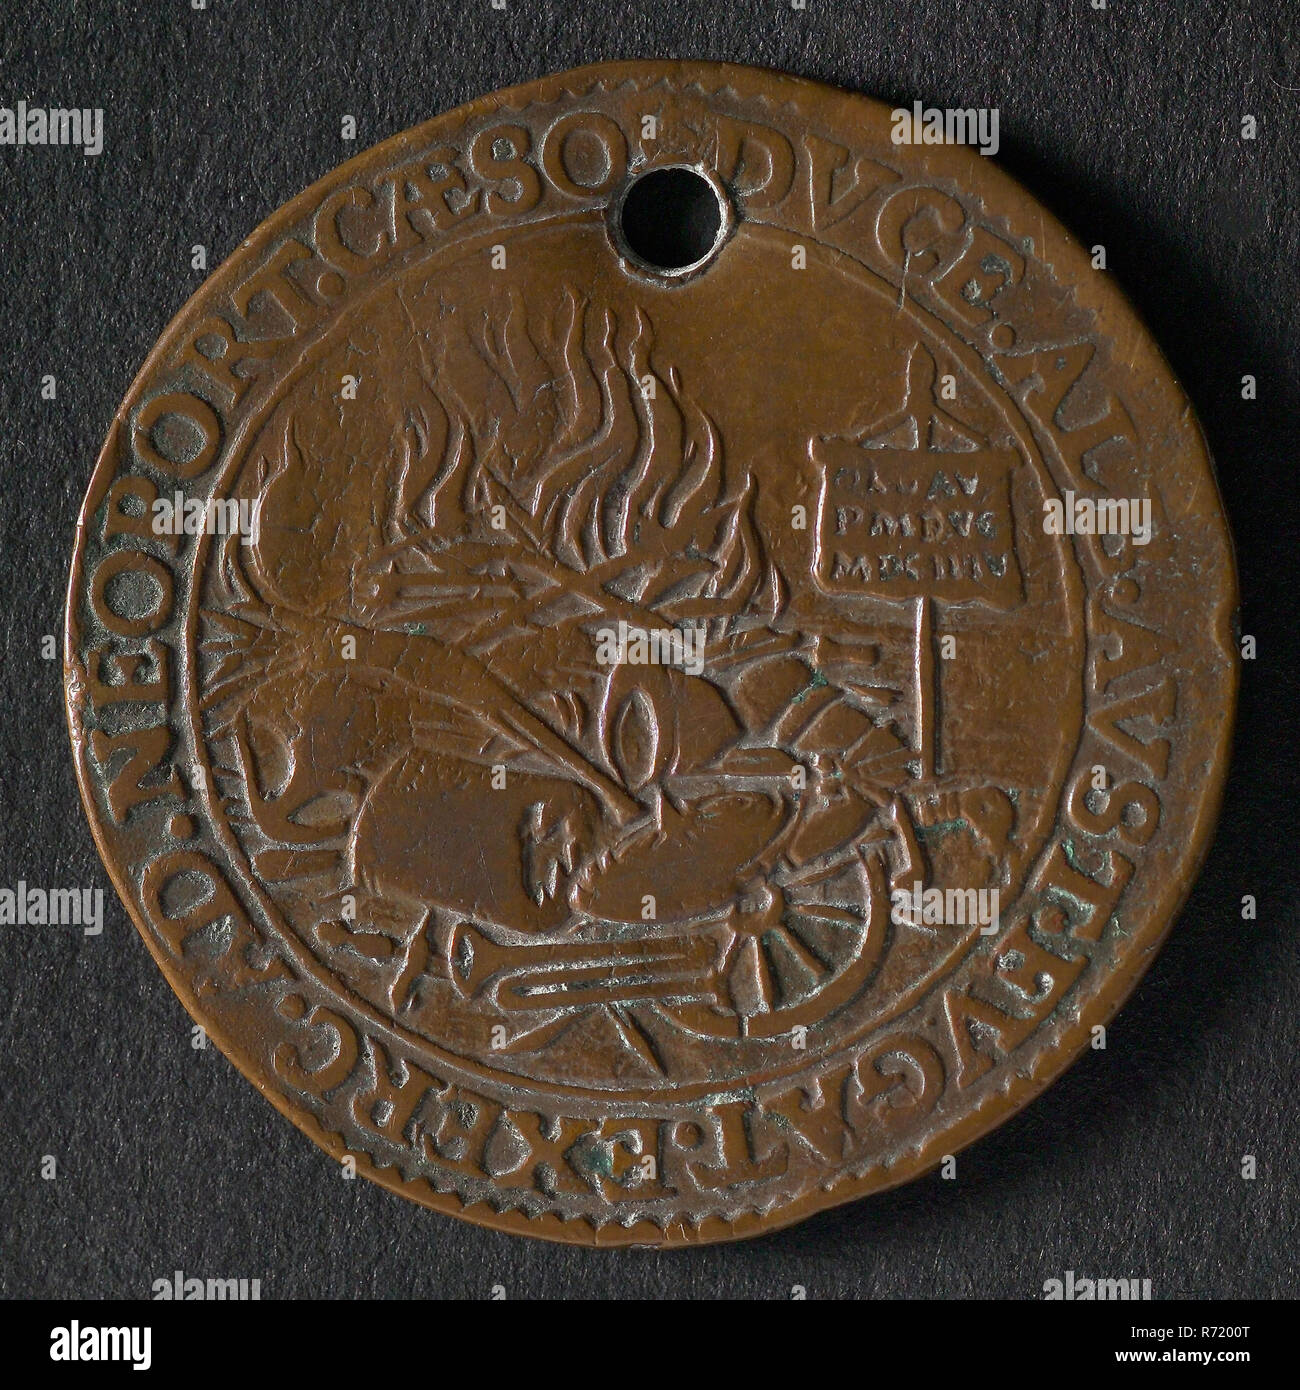 Medal on the peace proposals and the battle at Nieuwpoort, jeton utility medal medal exchange buyer, Flemish lion bound to column where FLAND refuses to offer him freedom hat omschrift: TVTVM. AVDENDI. PRECIVM. OBLATA. LIBERTAS (the offered freedom is safe reward to take the plunge) Oldenbarnevelt - Stock Image